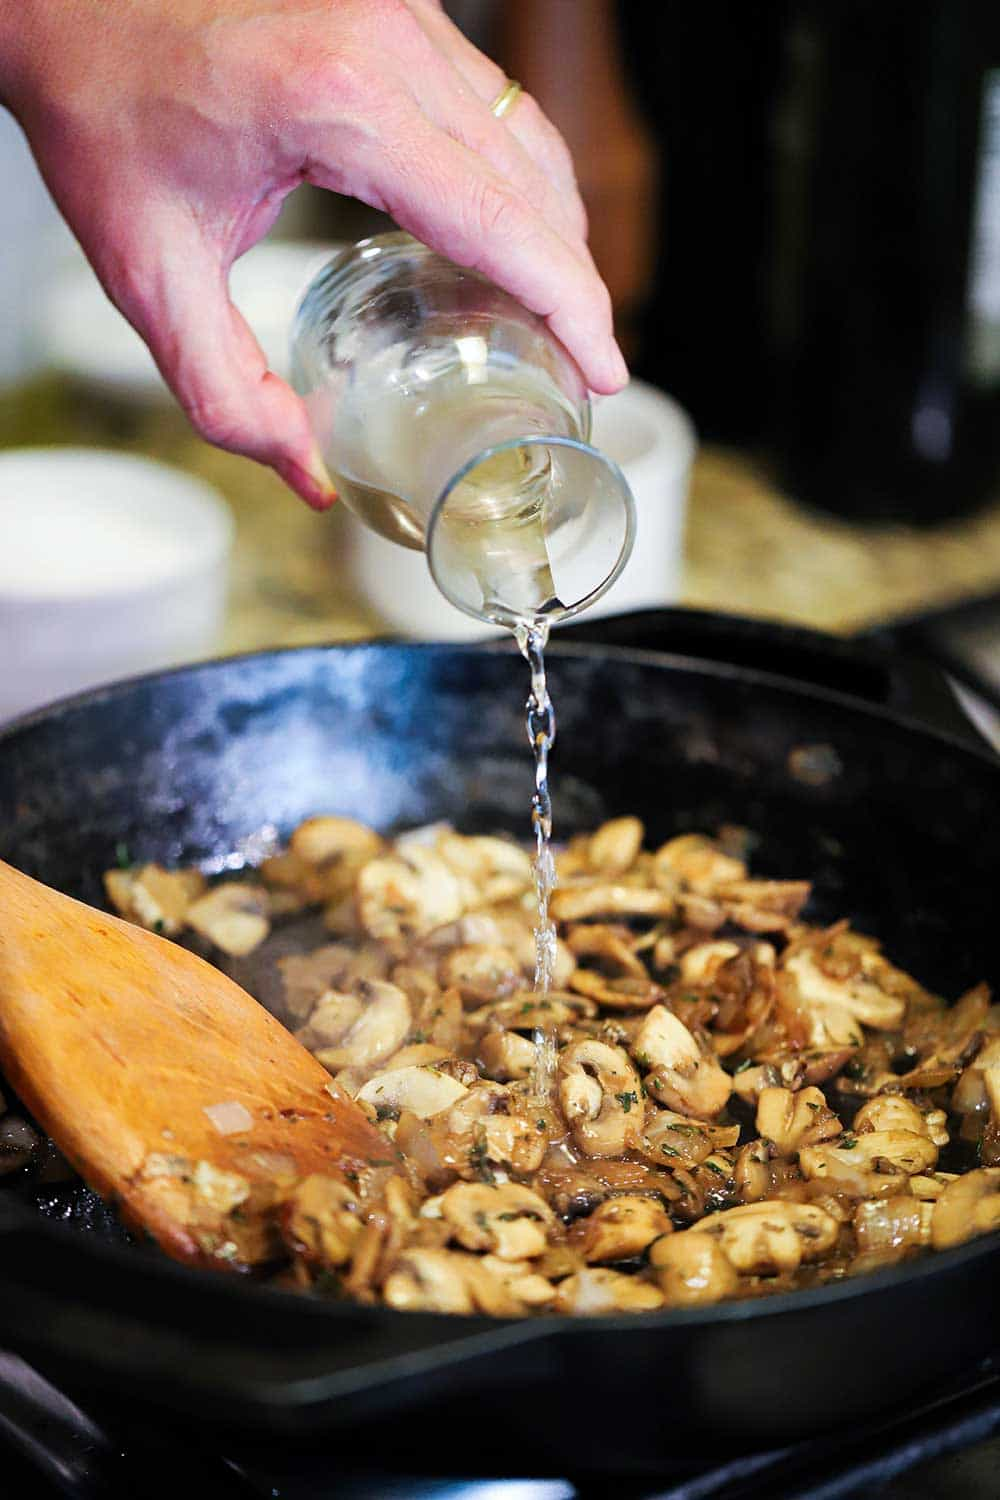 A hand pouring white wine from a small carafe into a cast-iron skillet filled with sautéd sliced mushrooms.